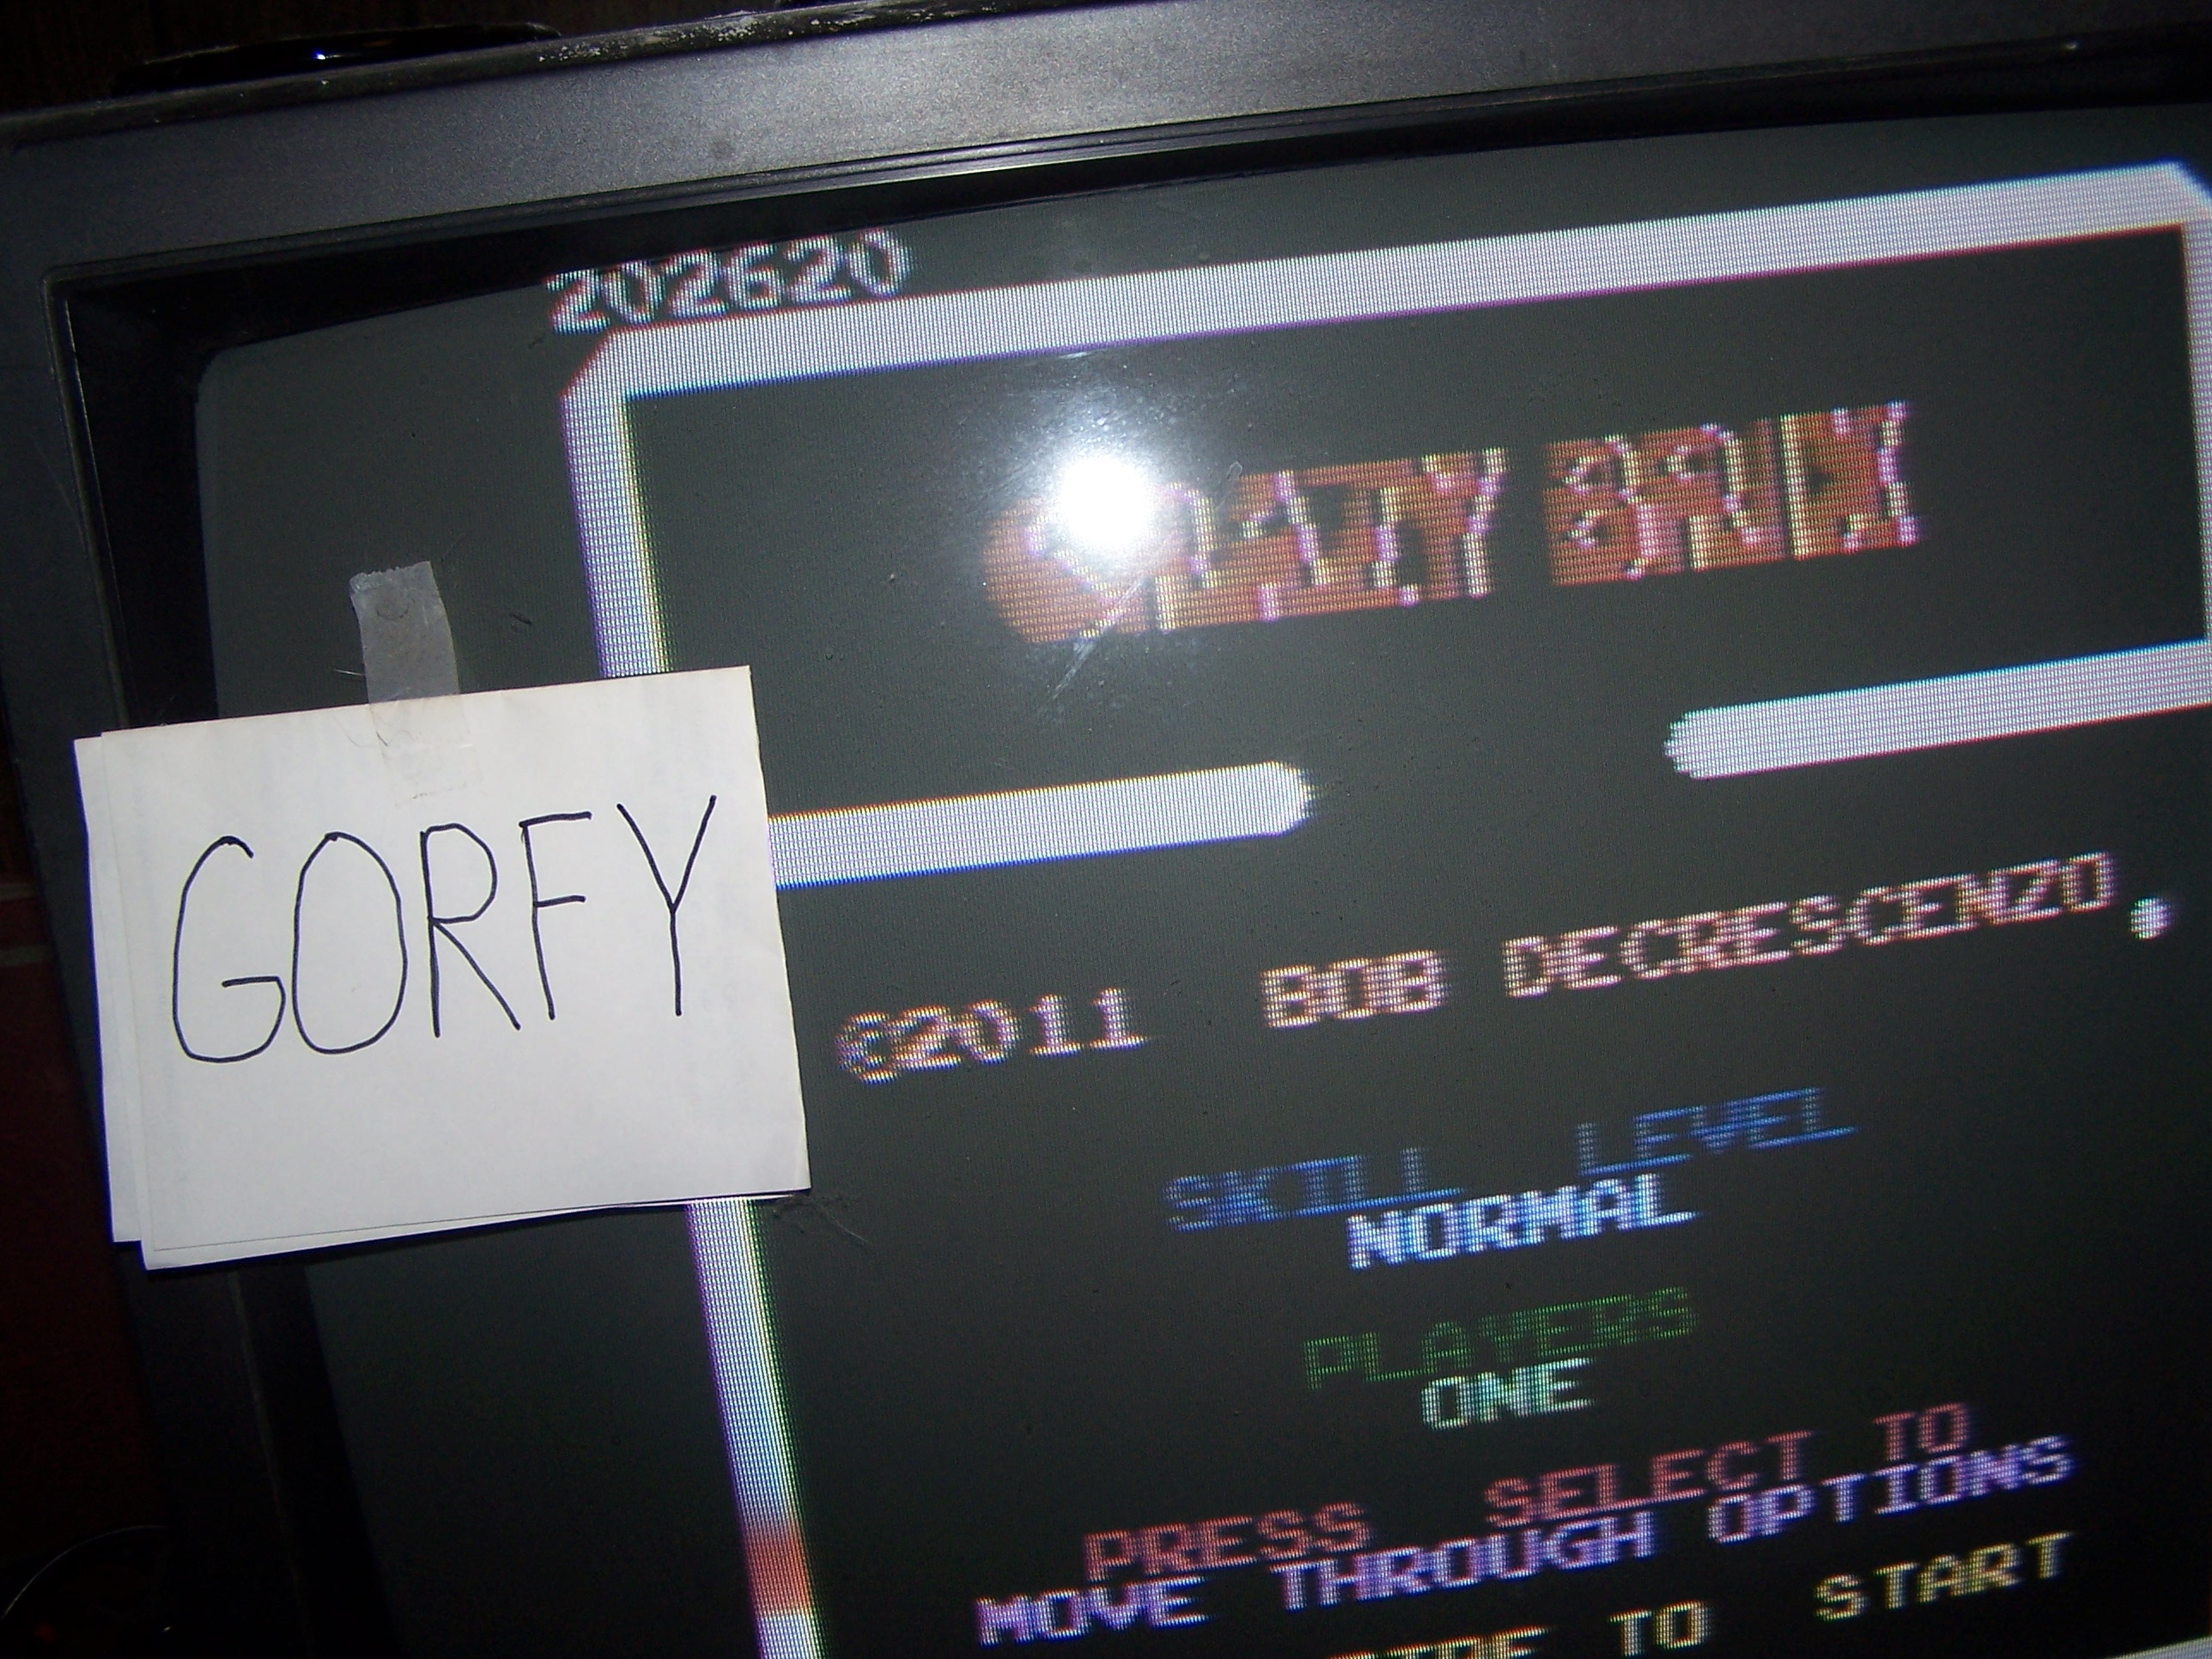 Gorfy: Crazy Brix: Normal (Atari 7800) 202,620 points on 2016-01-15 23:30:21